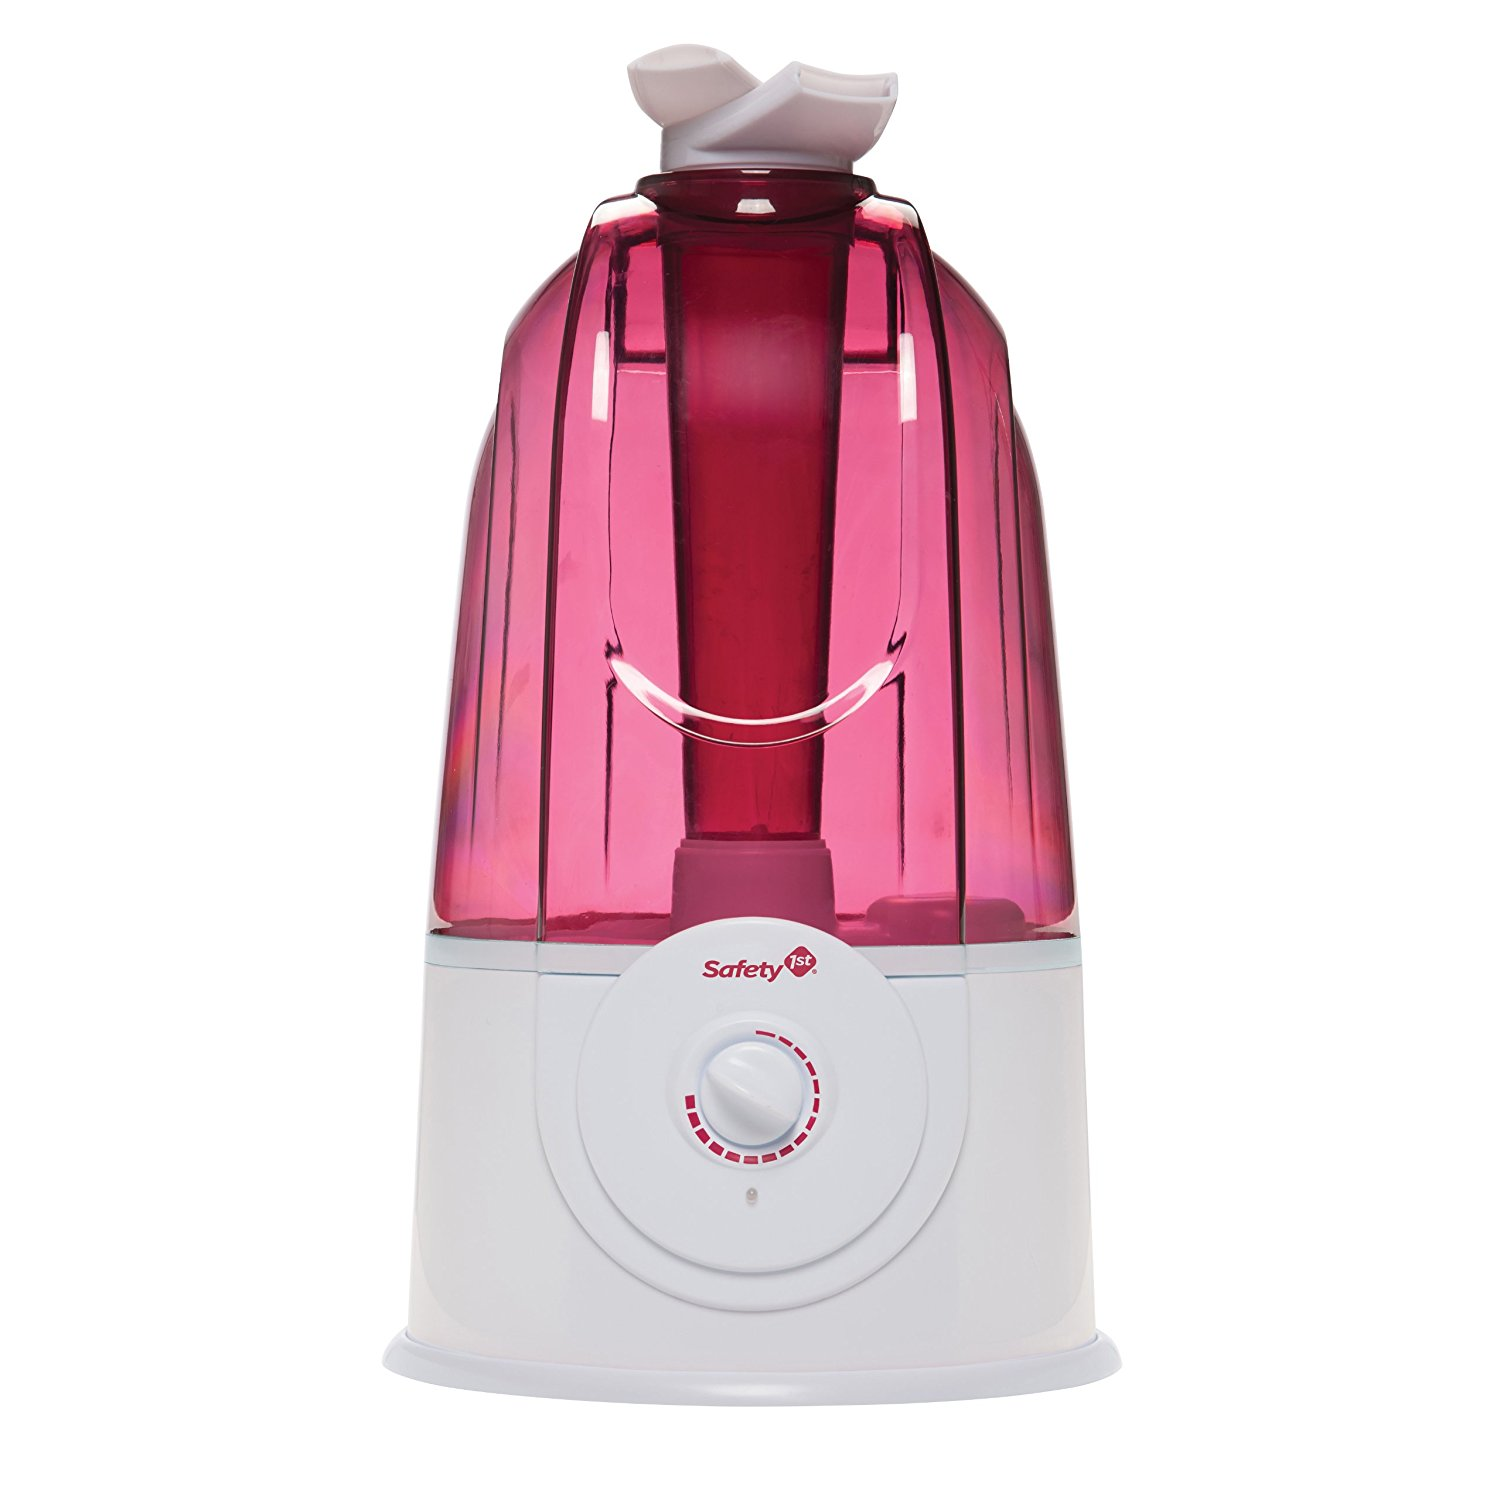 safety first humidifier, ultrasonic humidifier, best humidifier for baby, humidifier for baby